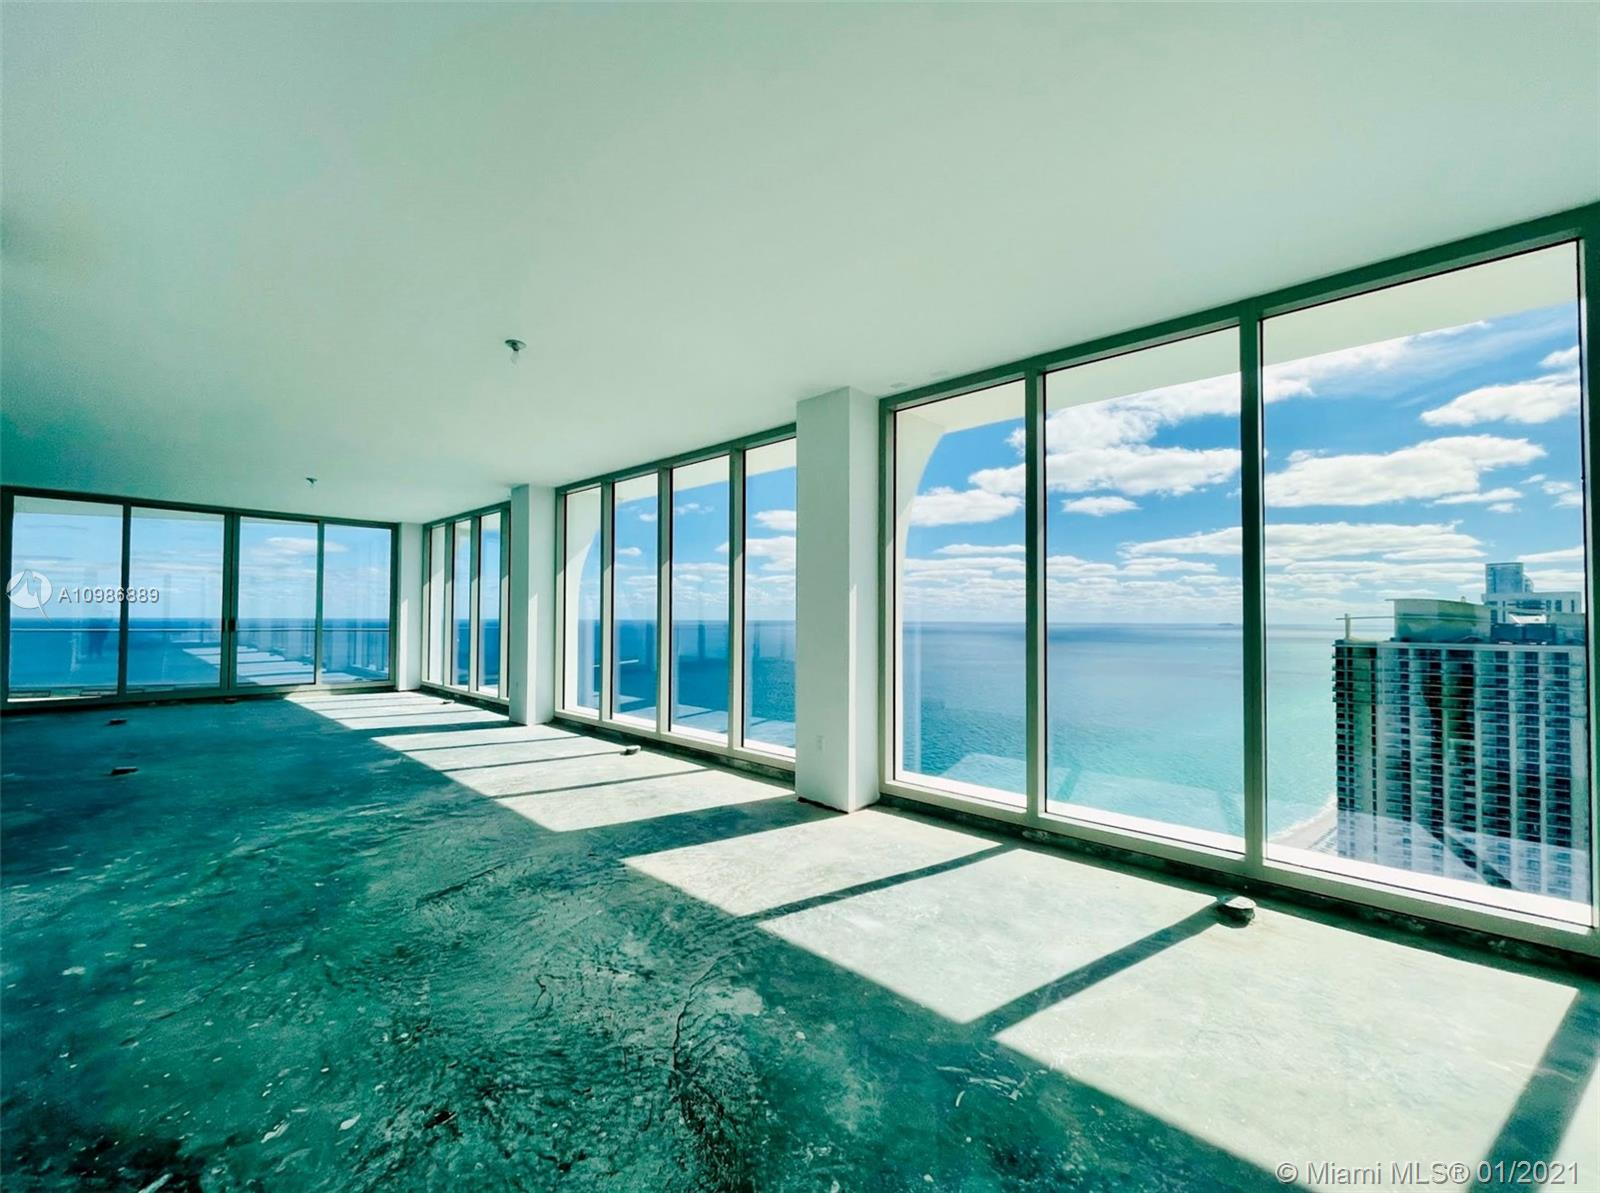 16901 Collins Ave #4001 Property Photo